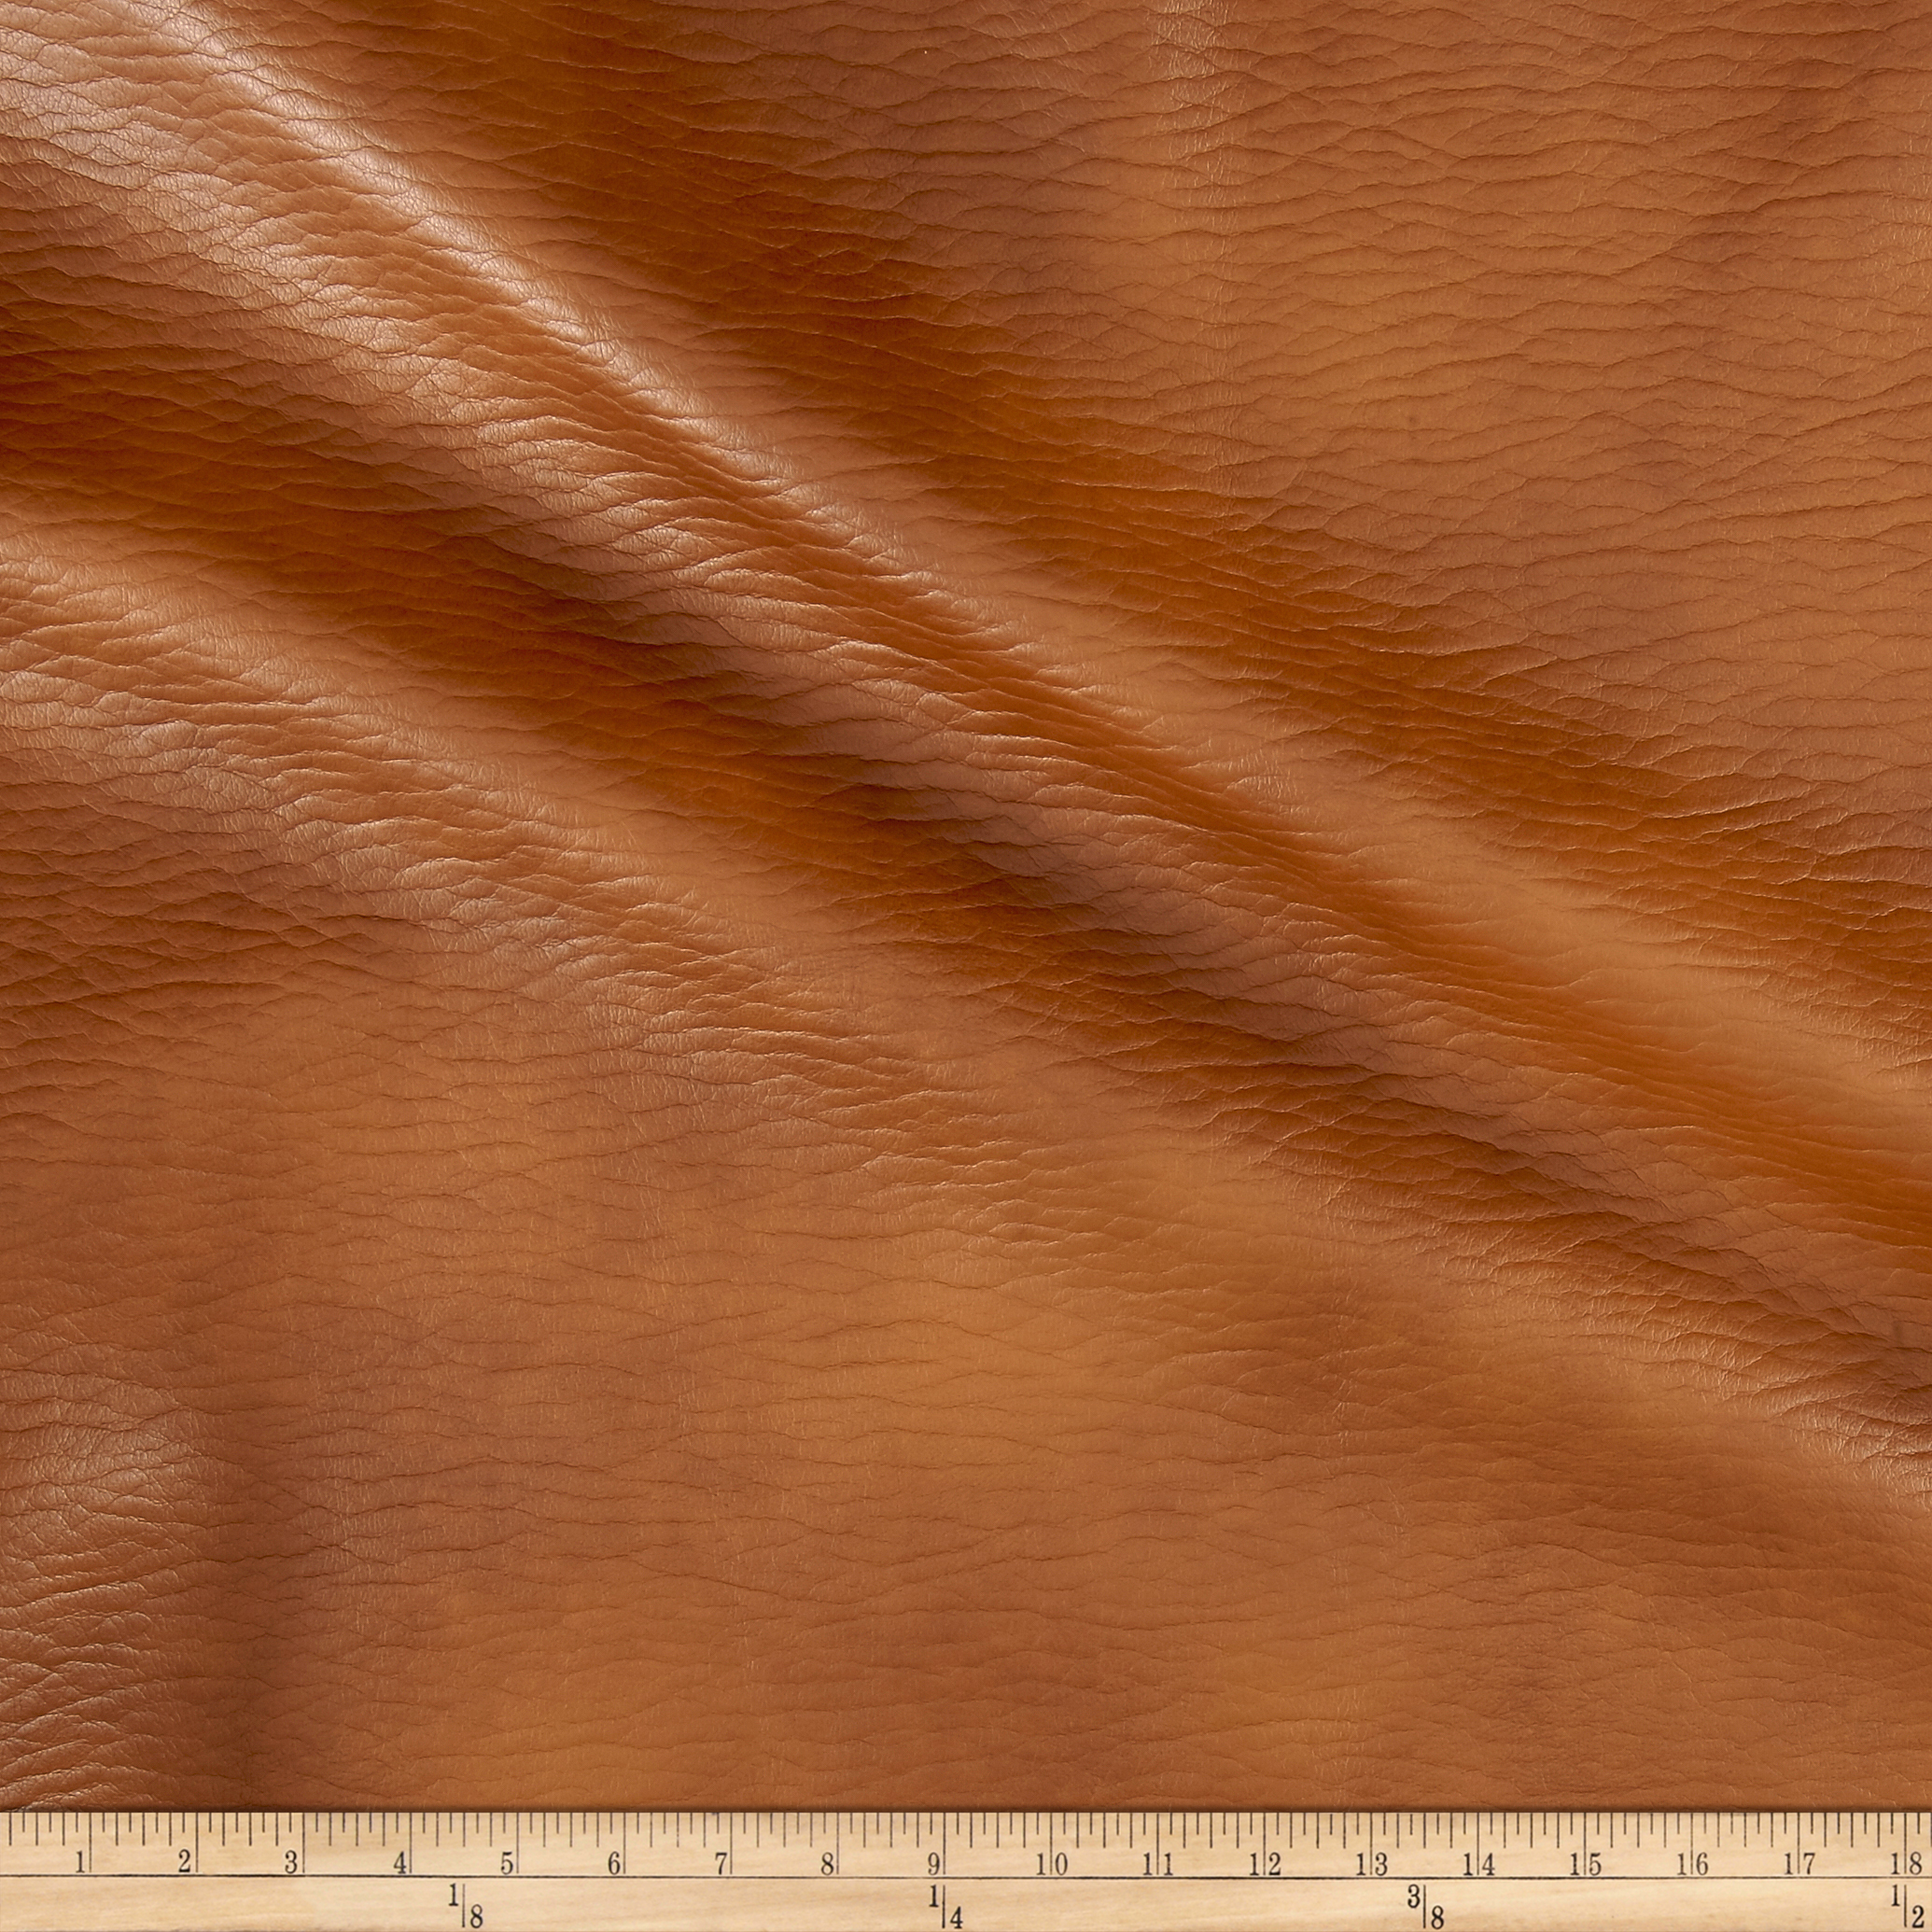 Richloom Tough Faux Leather Entity Cognac Fabric by TNT in USA